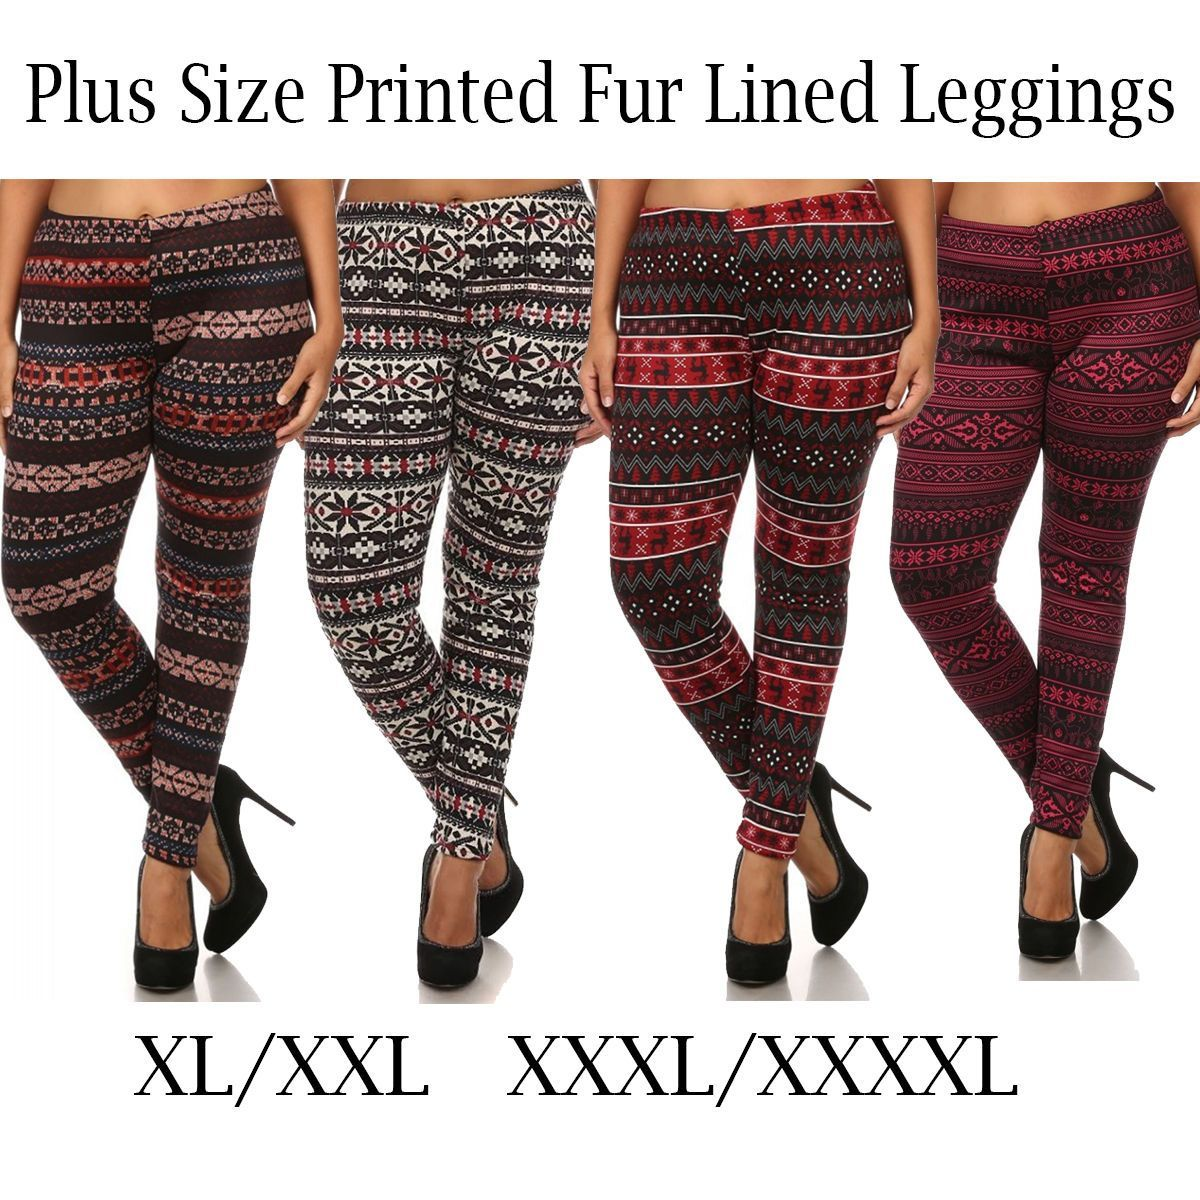 99b7c6c51d2059 Snowflake Deer Winter Fur Reindeer Knitted Leggings S M L Juniors Plus 1X  2X 3X